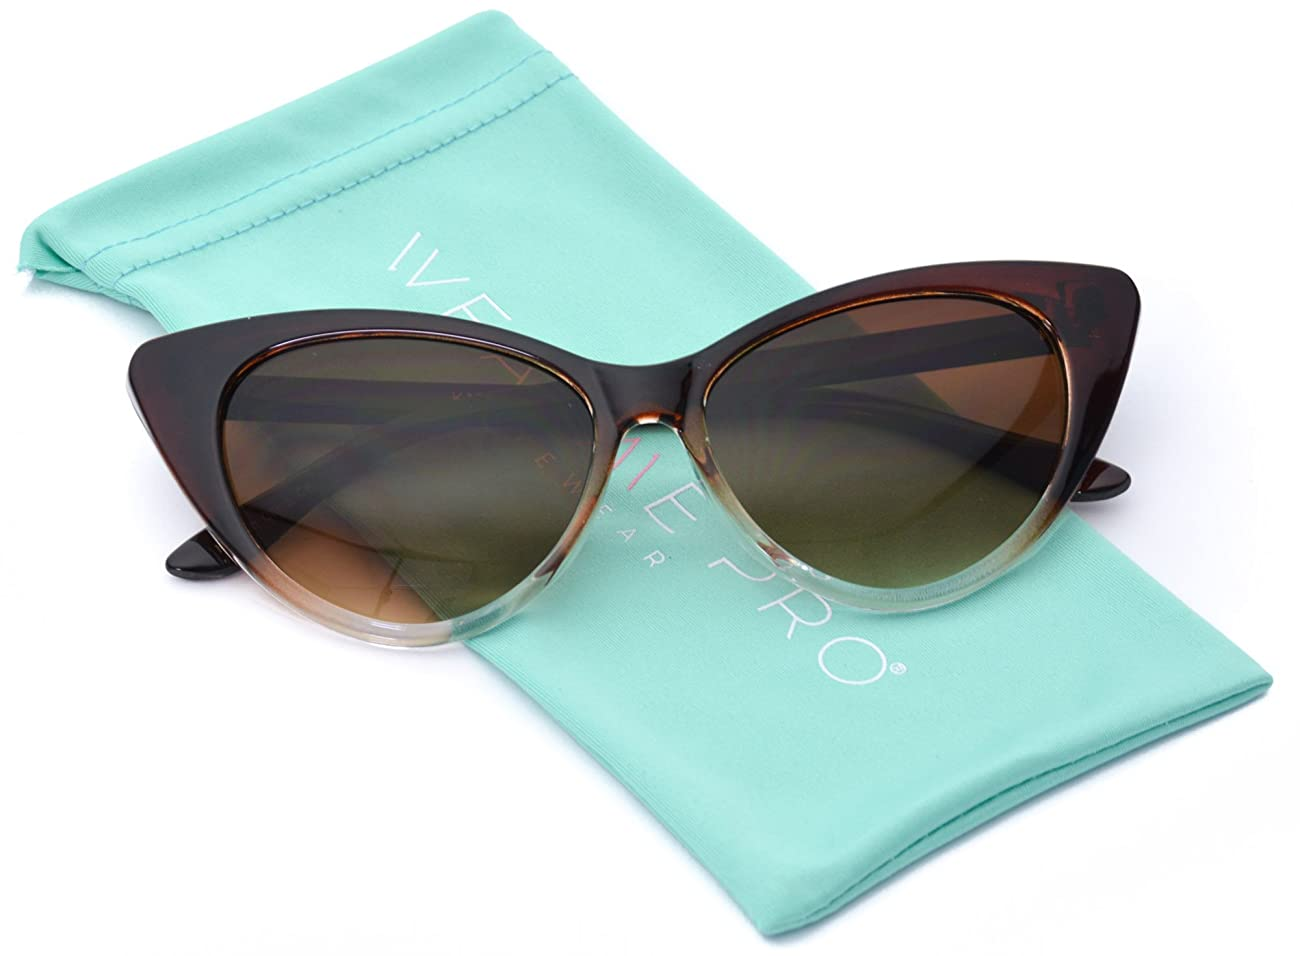 Vintage Inspired Fashion Mod Chic High Pointed Cat Eye Sunglasses for Women 0